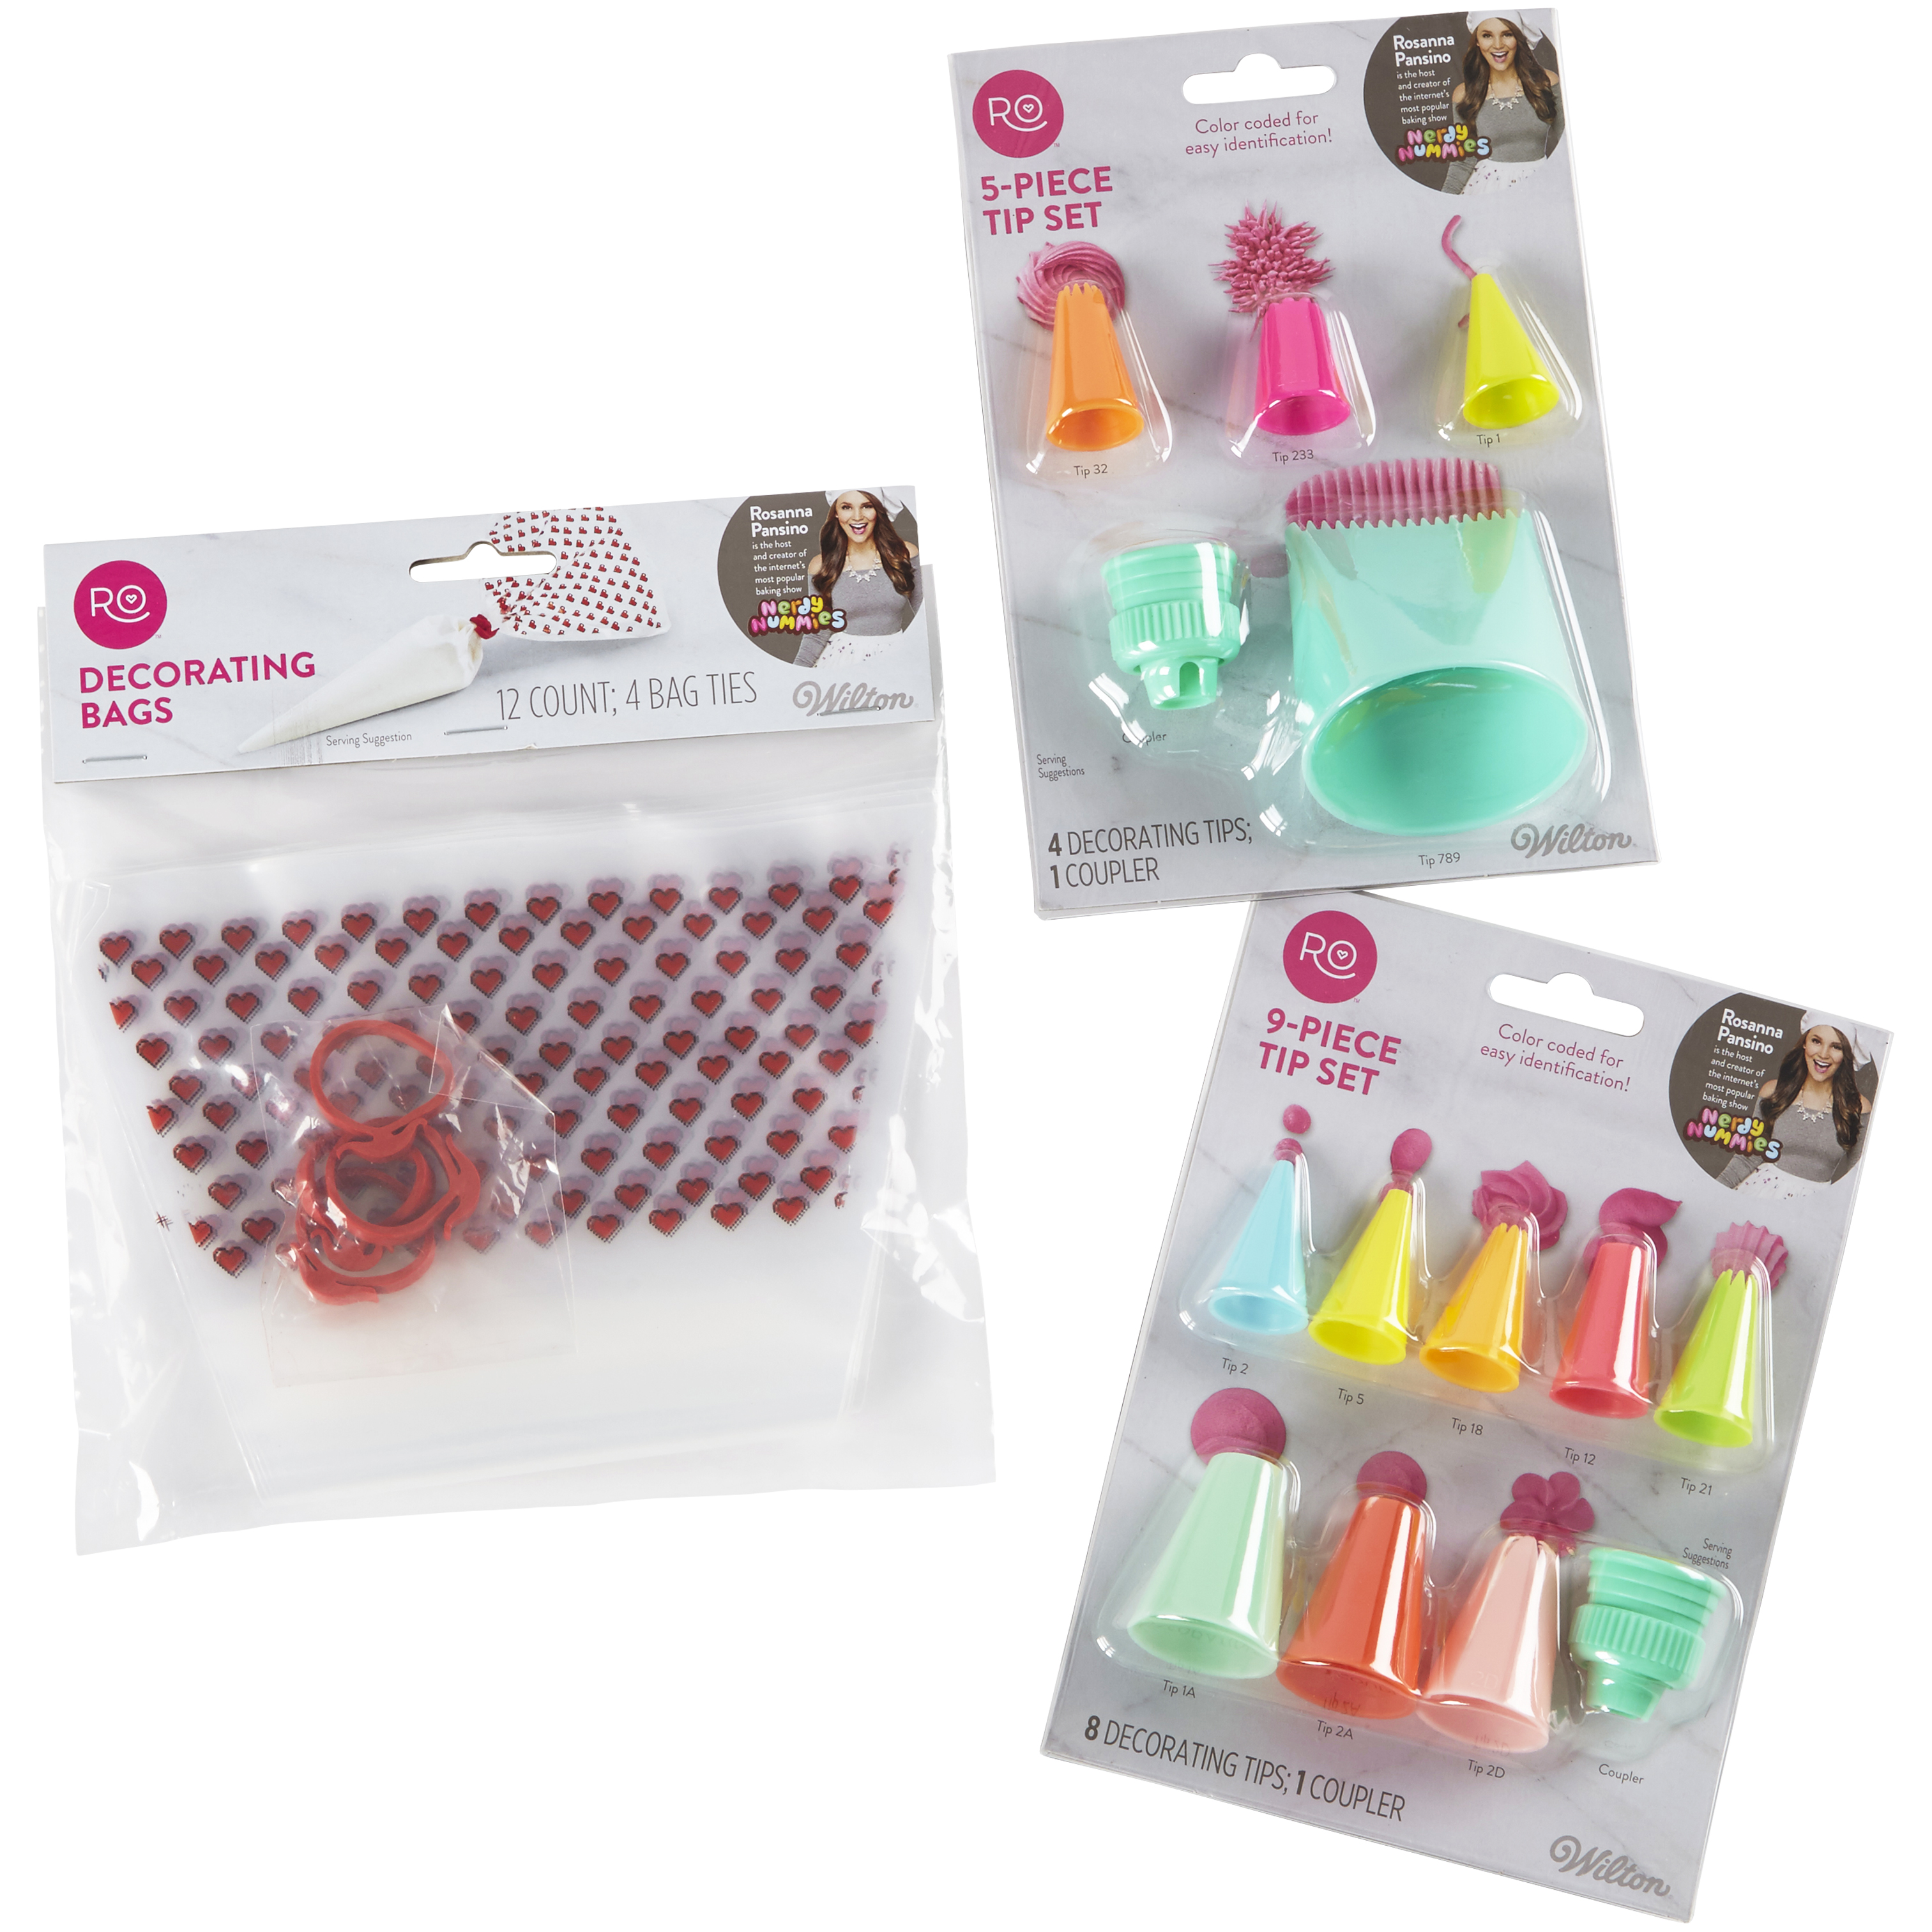 Wilton Rosanna Pansino Beginner Cake Decorating Set